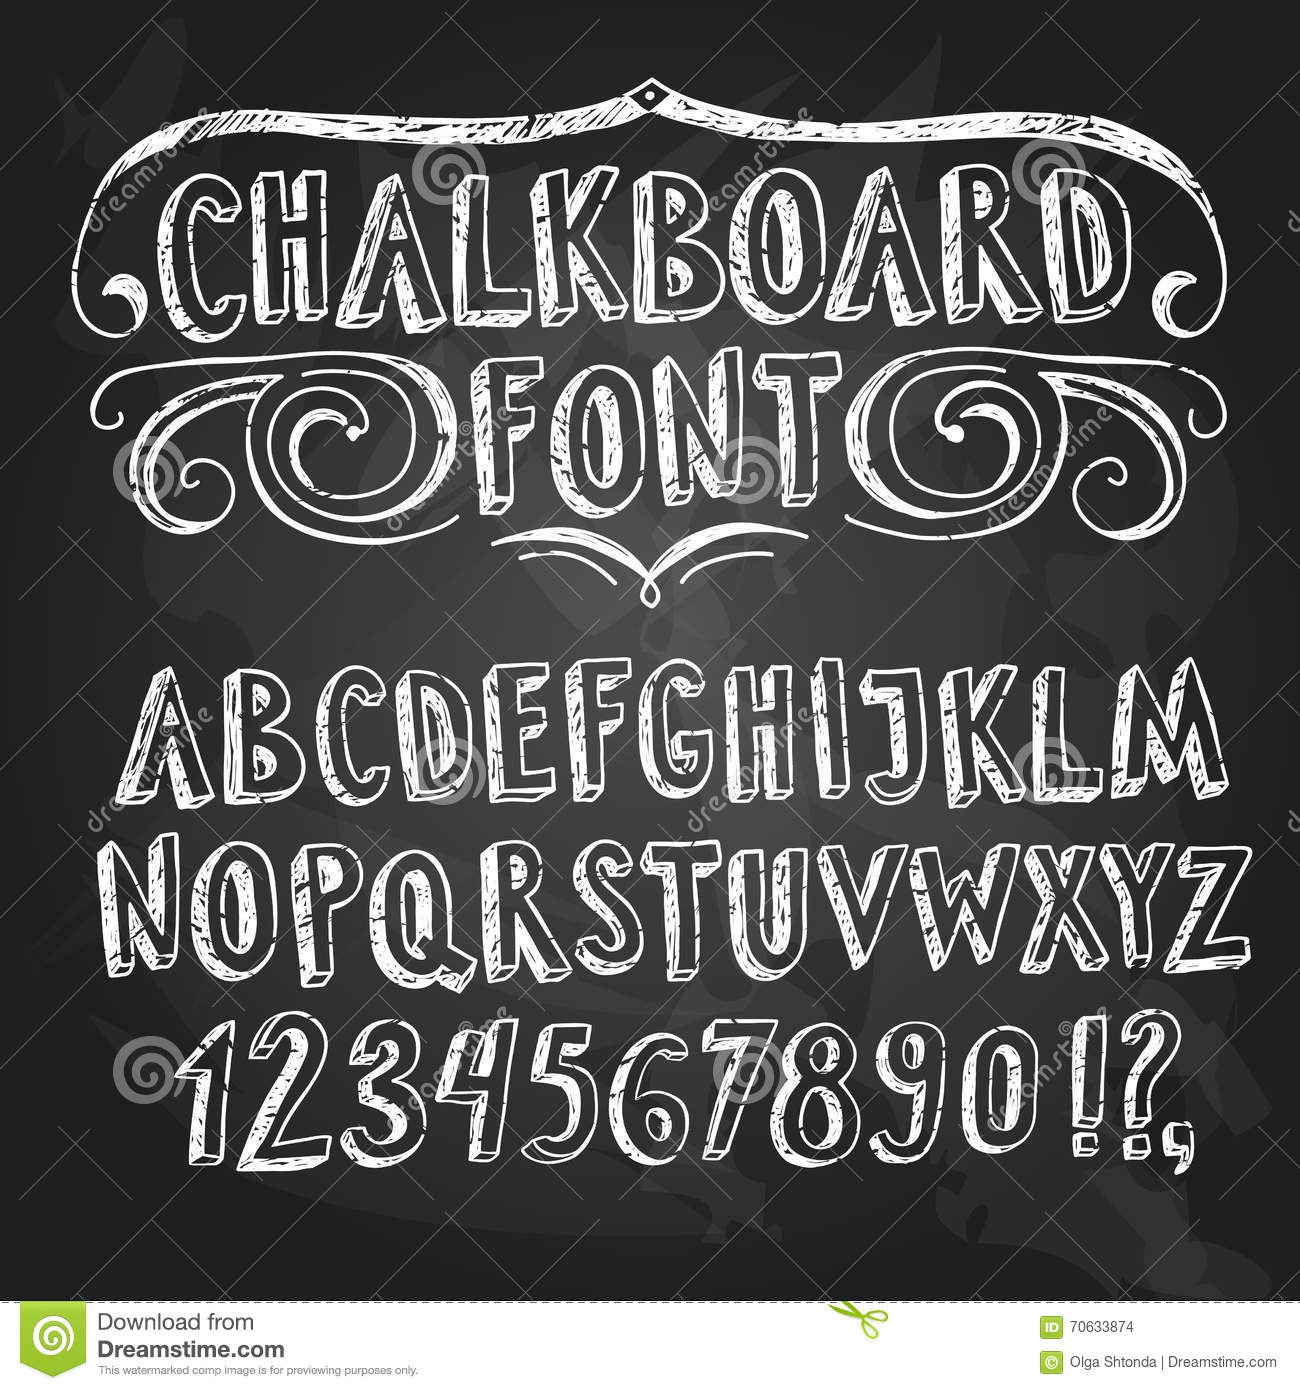 Hand Drawn Chalkboard Fonts Set Stock Illustration - Image: 70633889